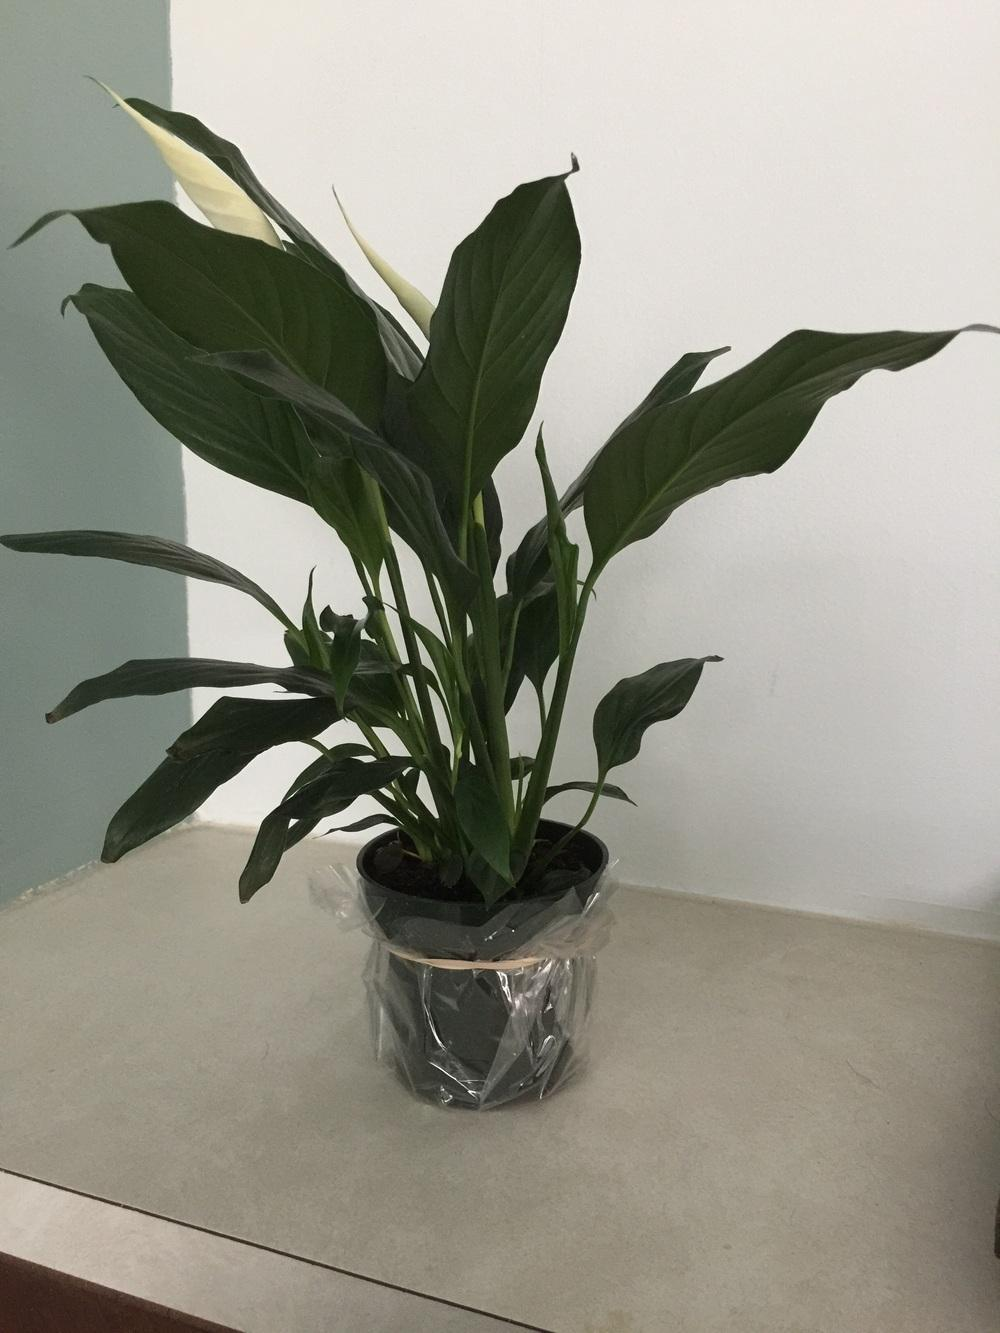 Ask a question forum how to grow peace lily as tall as possible thumb of 2016 12 09jtetra1330ebbc izmirmasajfo